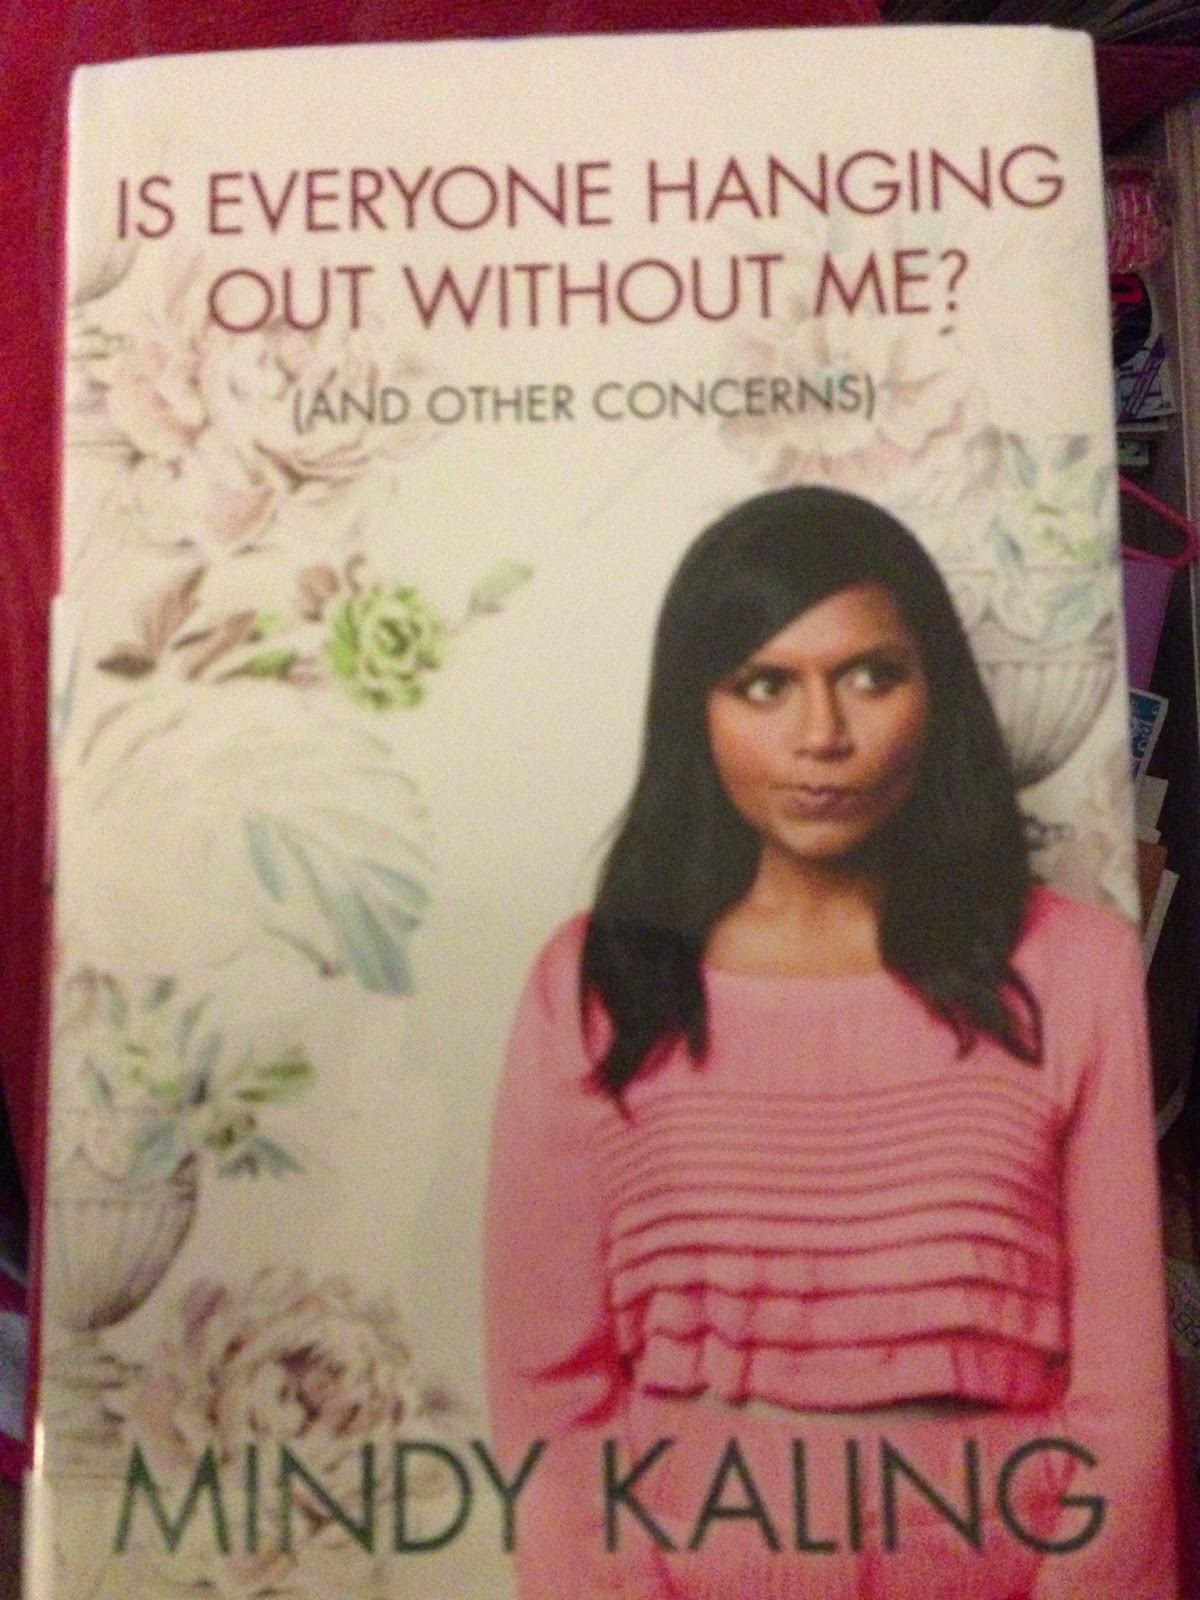 Mama Fashionista Mindy Kaling Is Everyone Hanging Out Without Me And Other Concerns A Be Chic Literate Review